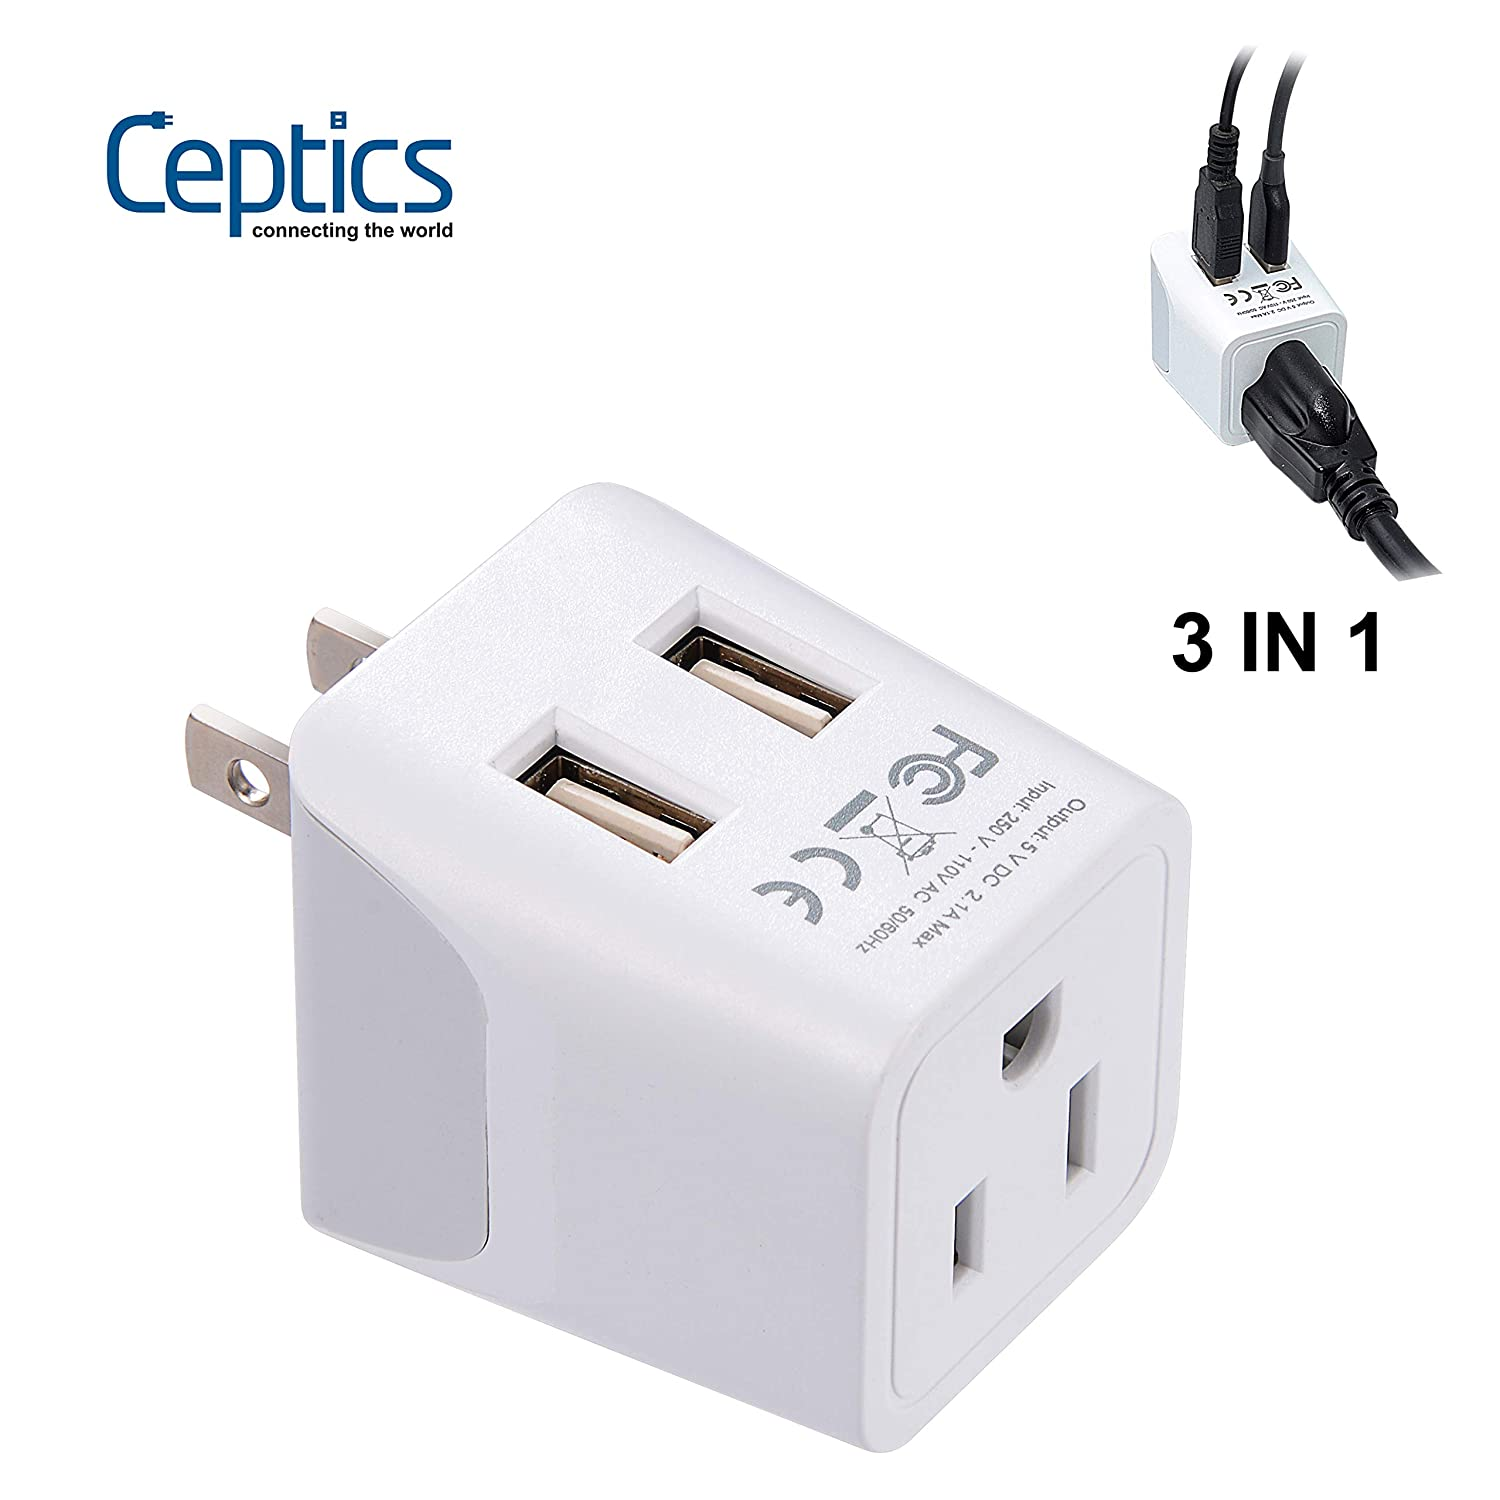 Ceptics Japan, Philippines Travel Adapter Plug with Dual USB - USA Input - Type A - Ultra Compact (CTU-6) - Perfect for Cell Phones, Laptops, Camera Chargers